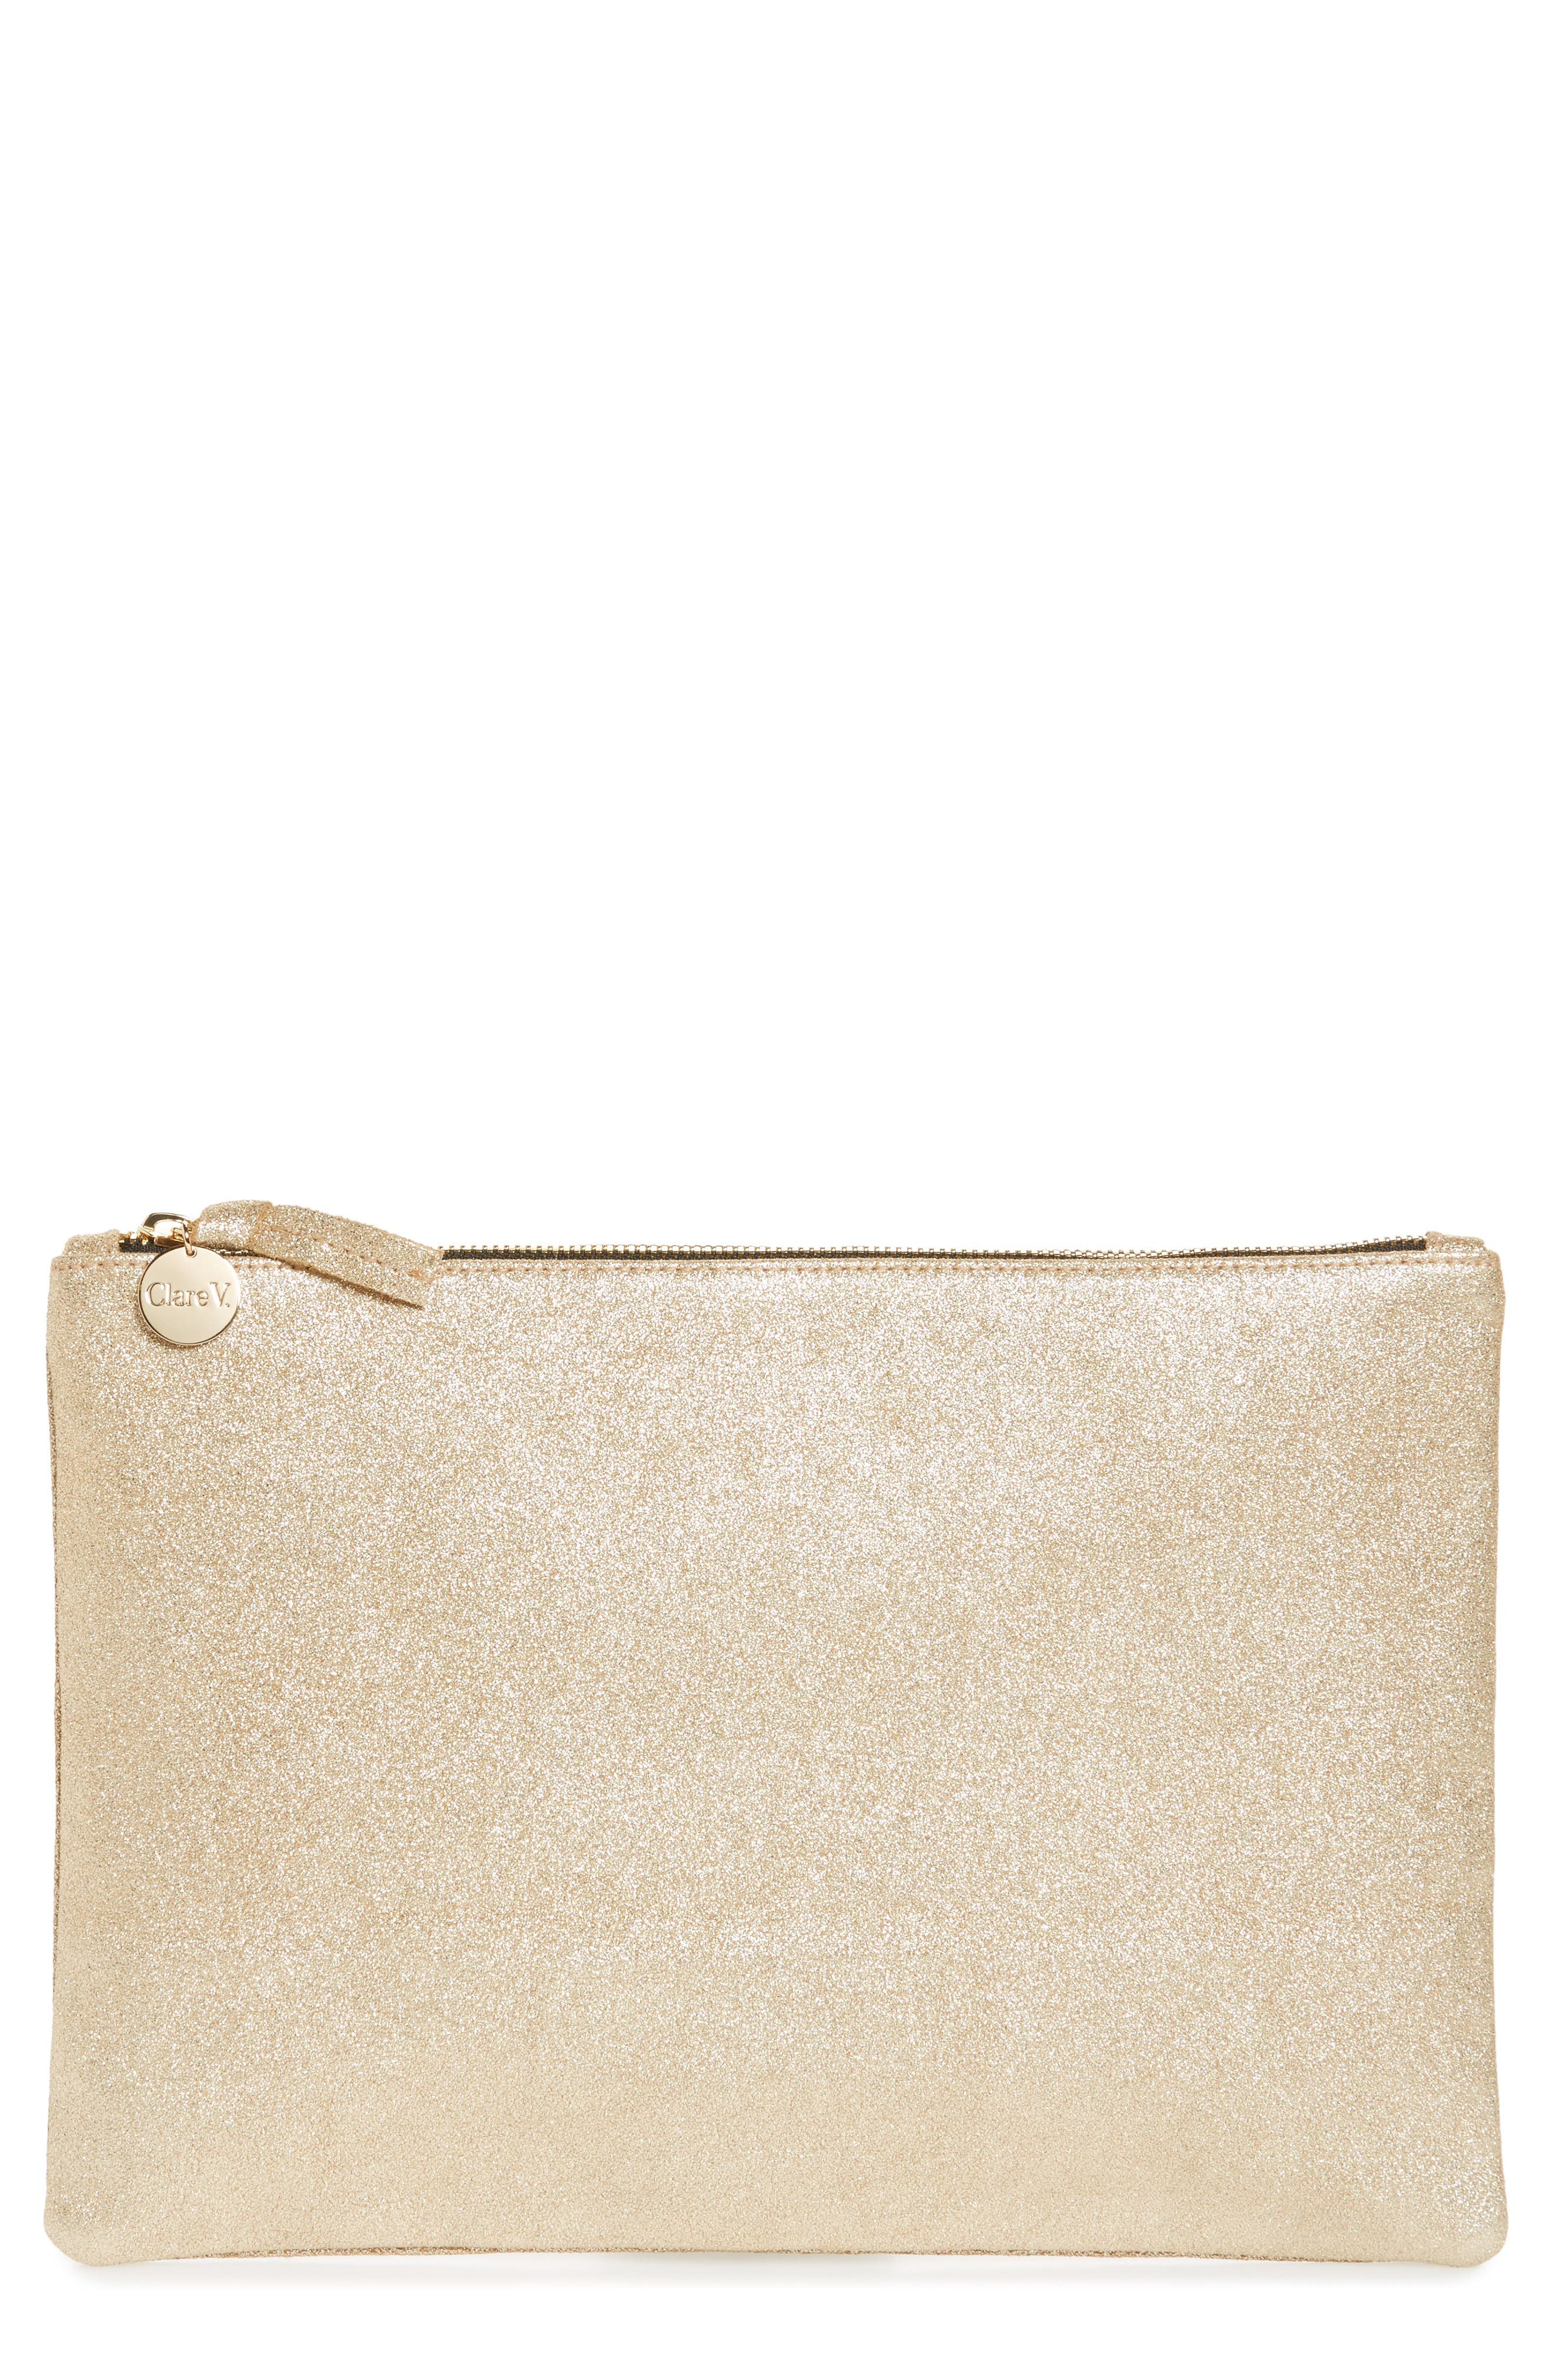 Maison Metallic Suede Flat Clutch,                         Main,                         color, Gold Shimmer Suede